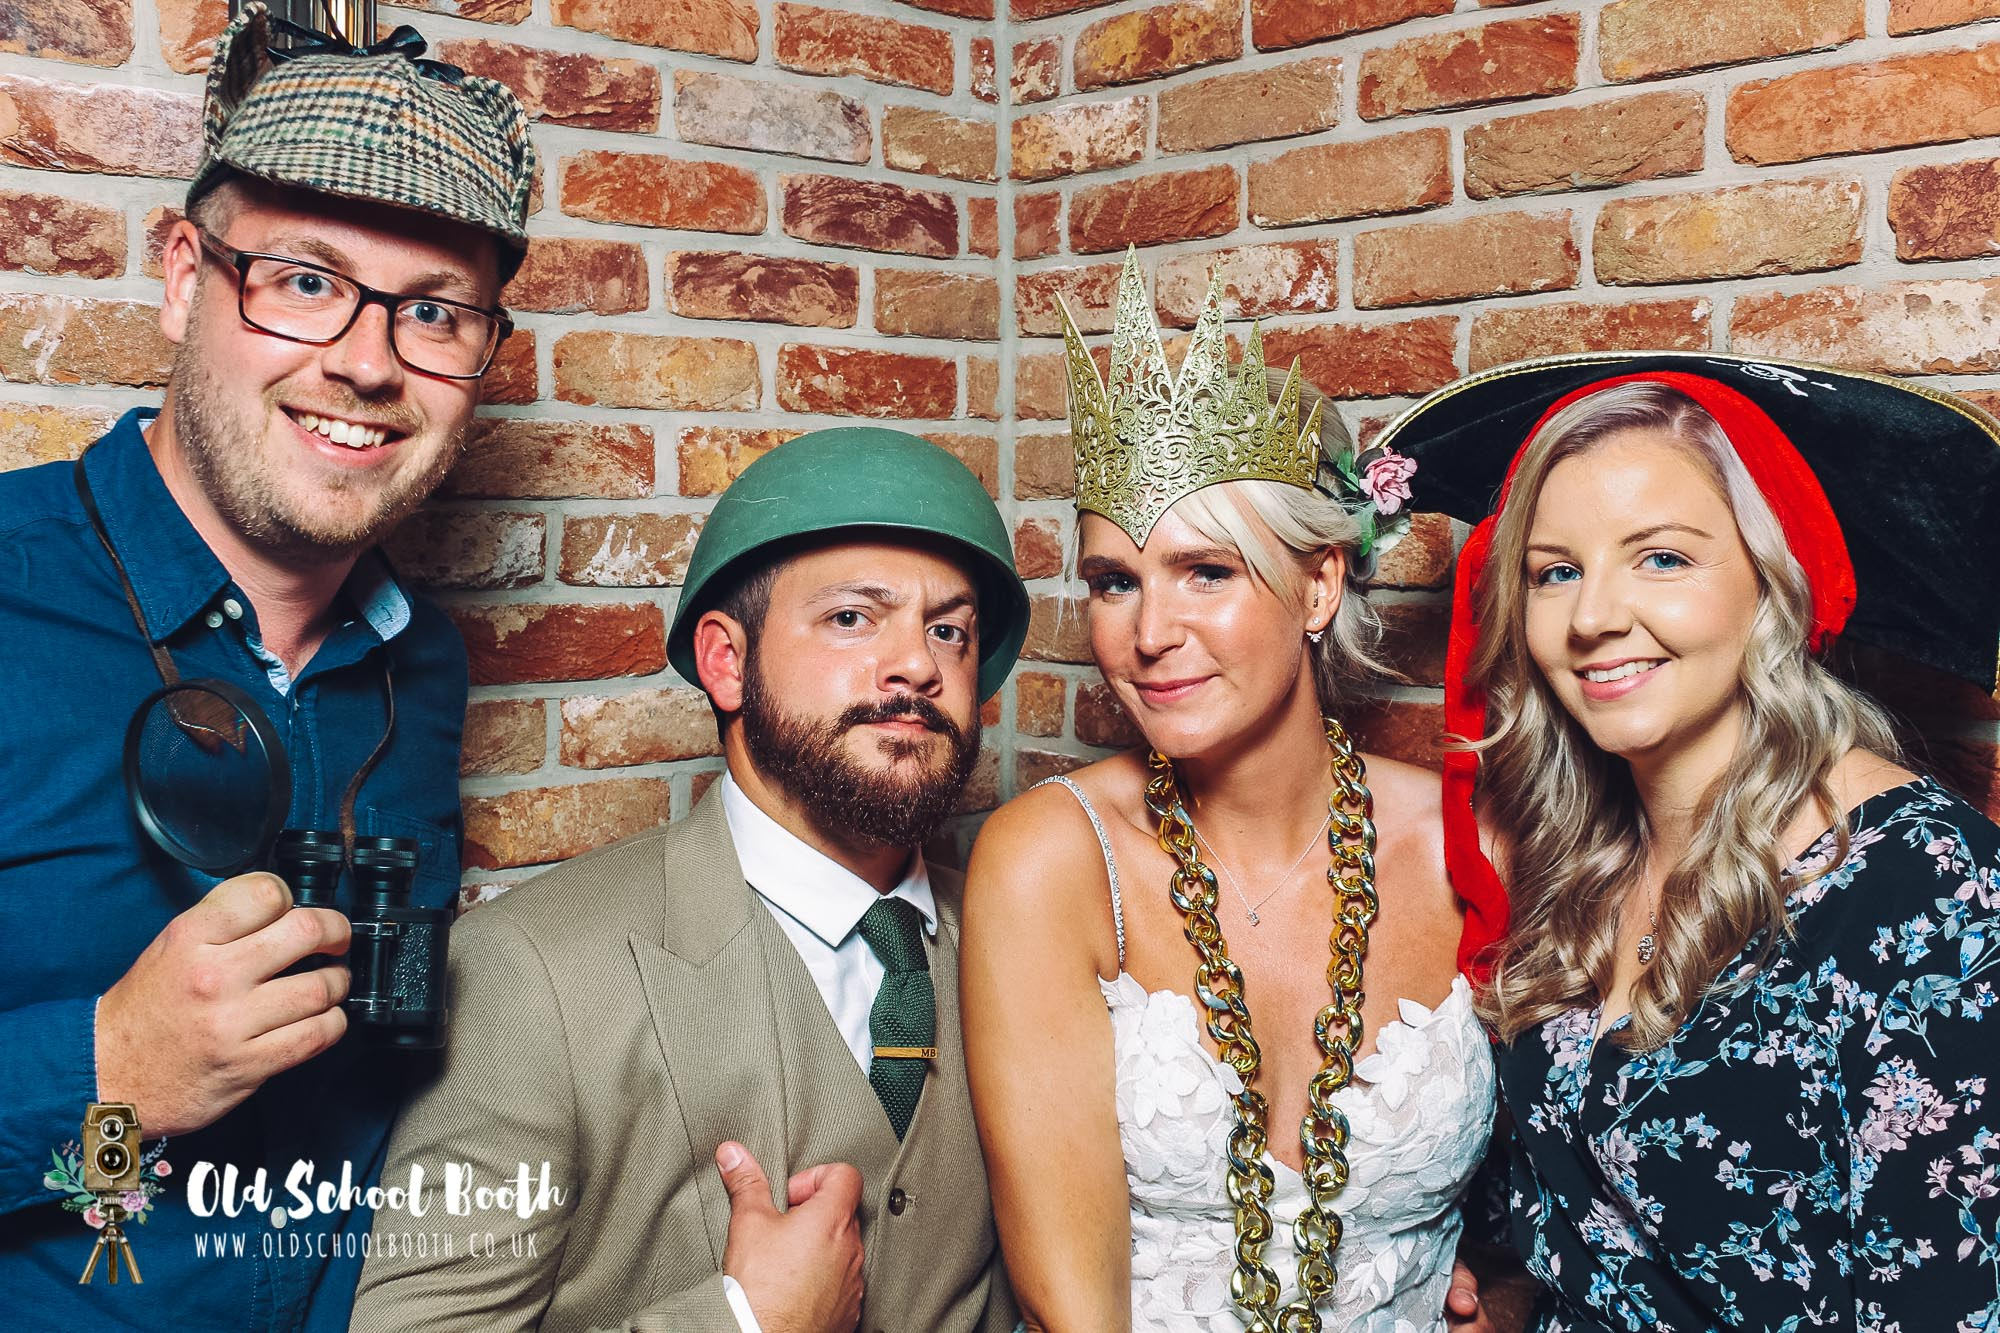 hurt arms ambergate photo booth